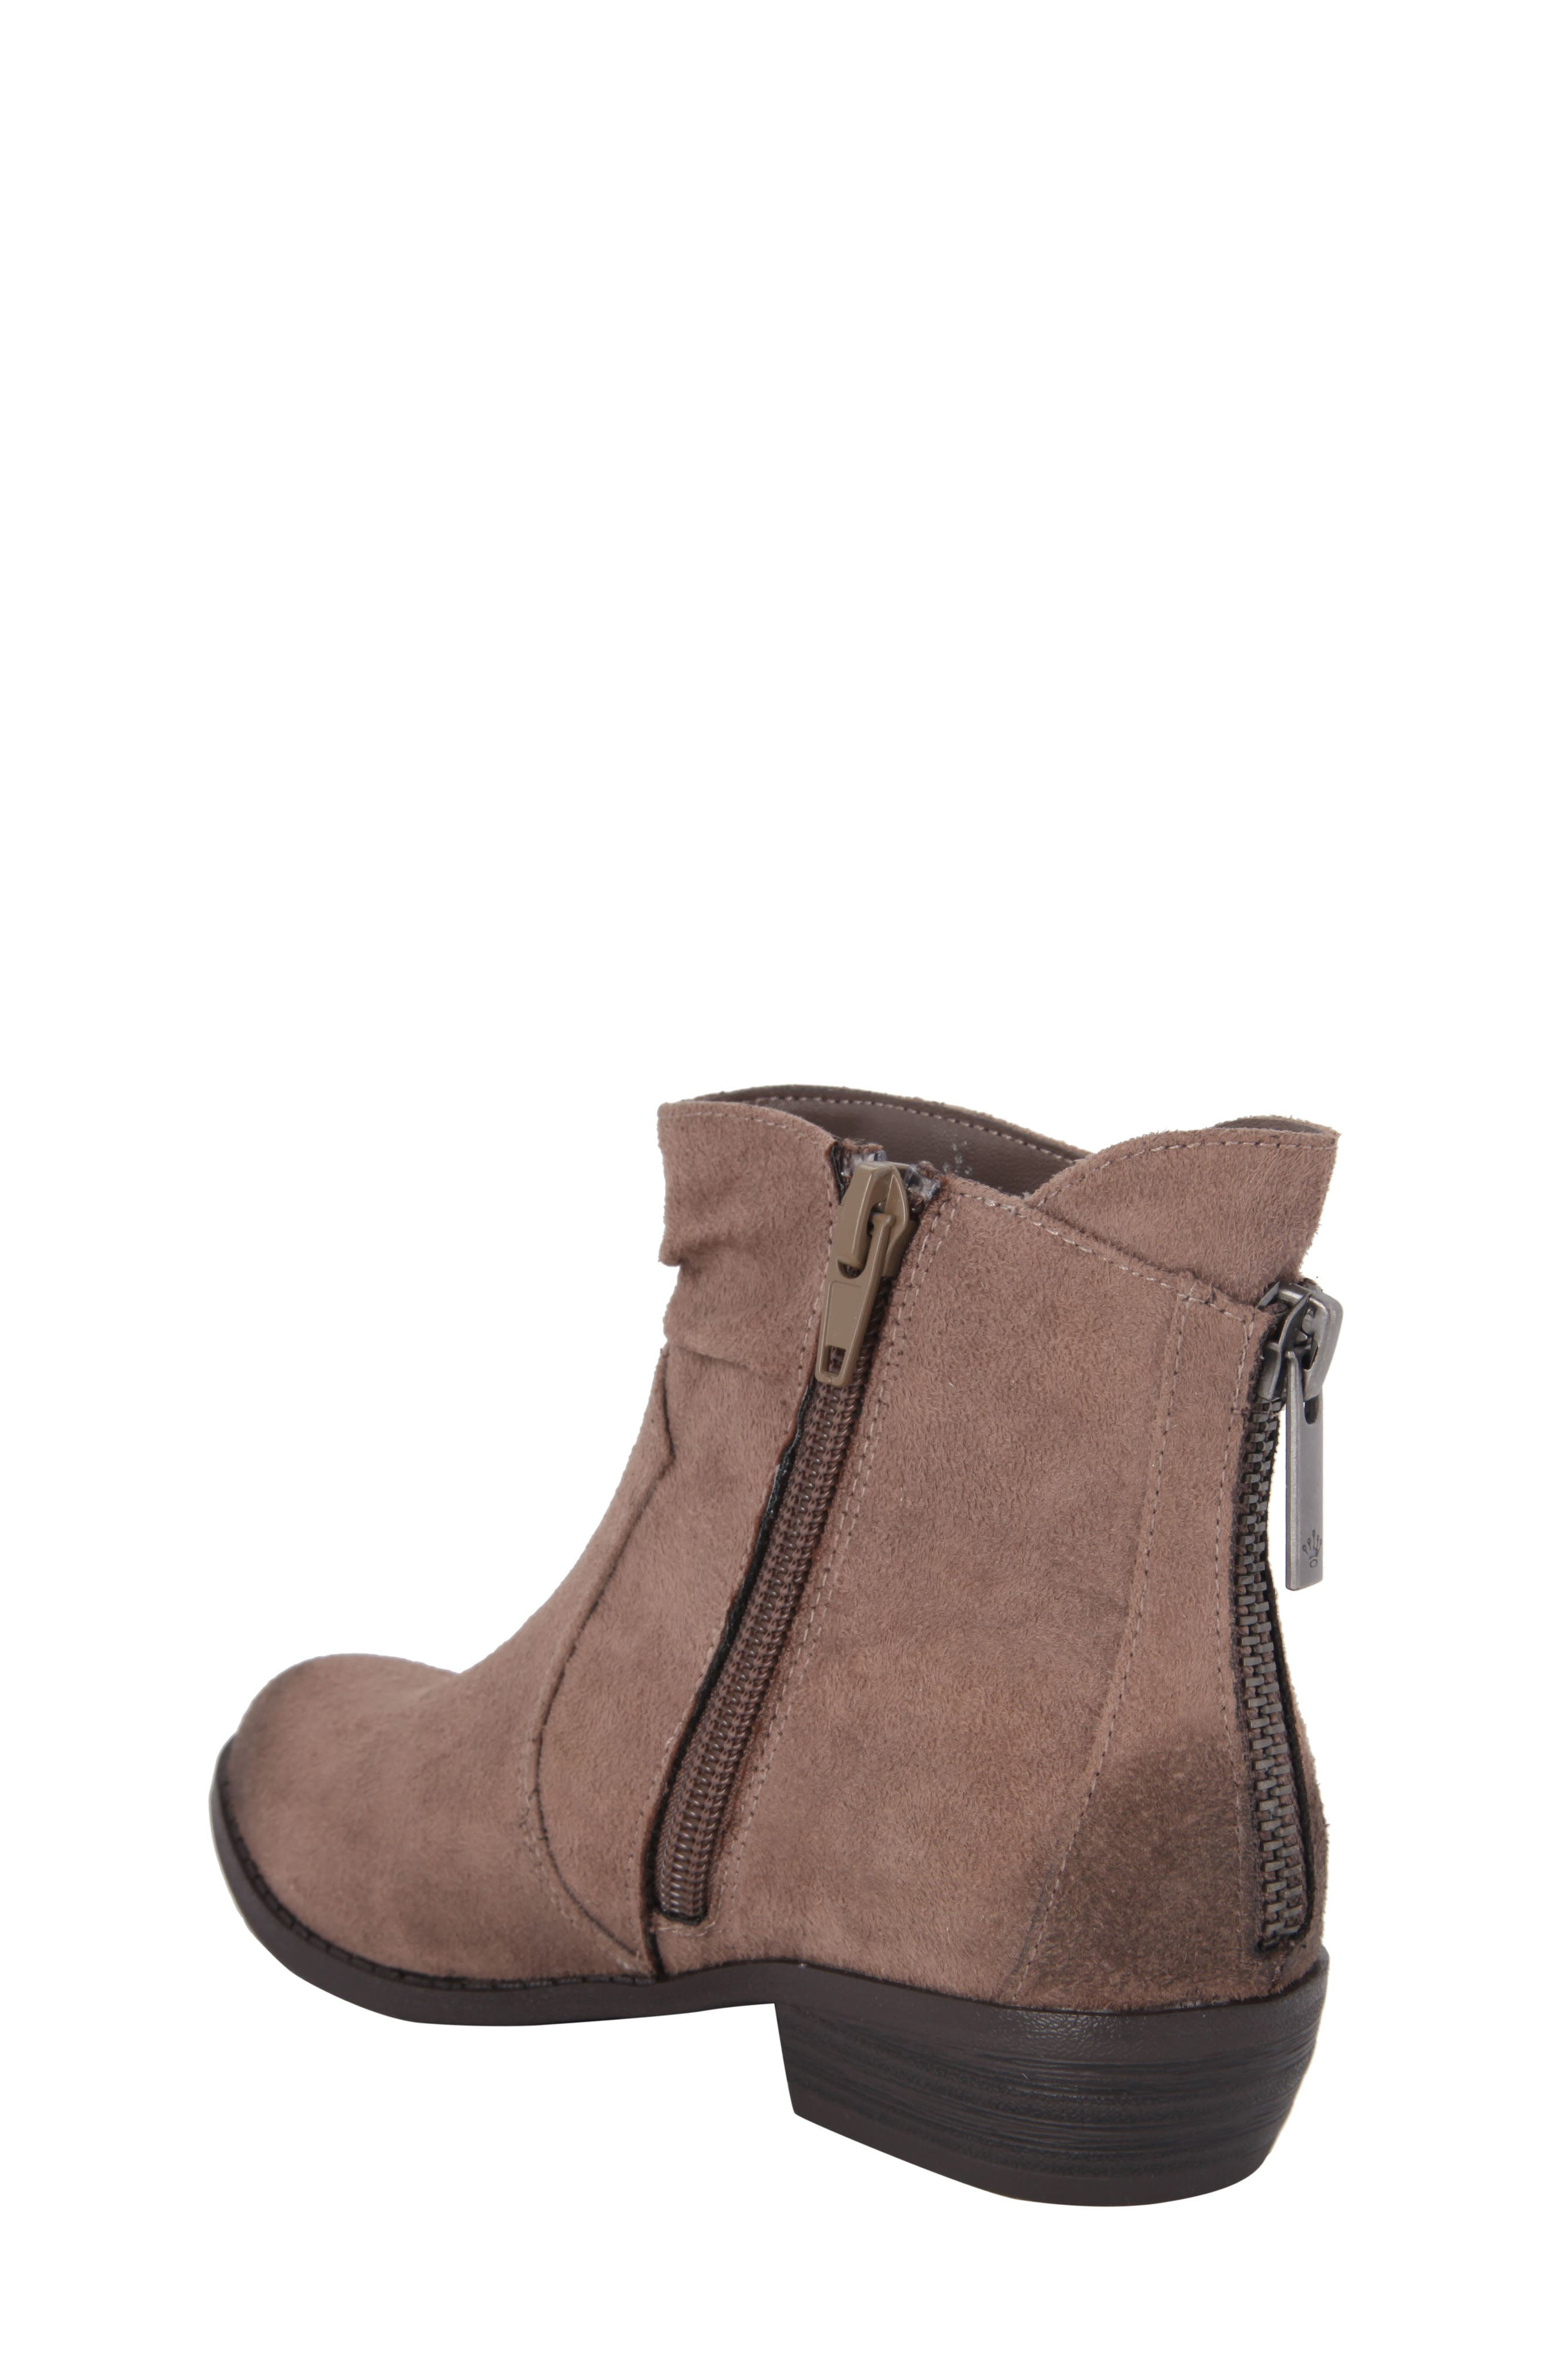 Delia Slightly Slouchy Bootie,                             Alternate thumbnail 2, color,                             Taupe Microsuede